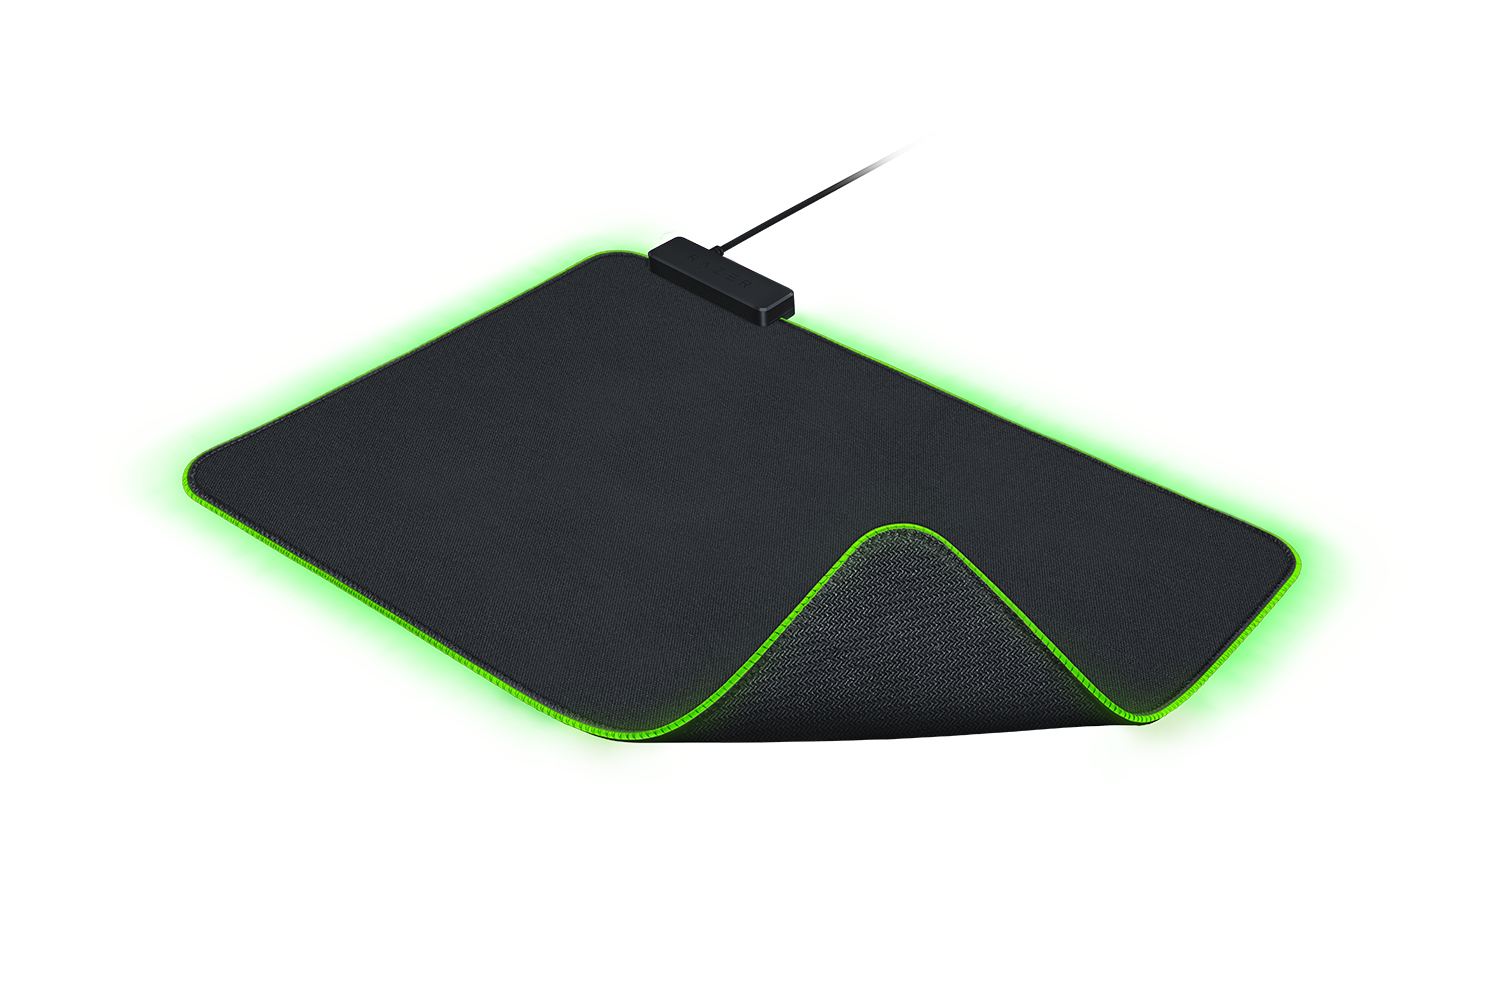 990f8a44e1f PC PARTS & COMPONENT STORE - Razer Goliathus Chroma Black Gaming mouse pad  - FAST DELIVERY IN NORTHERN IRELAND - REPUBLIC OF IRELAND